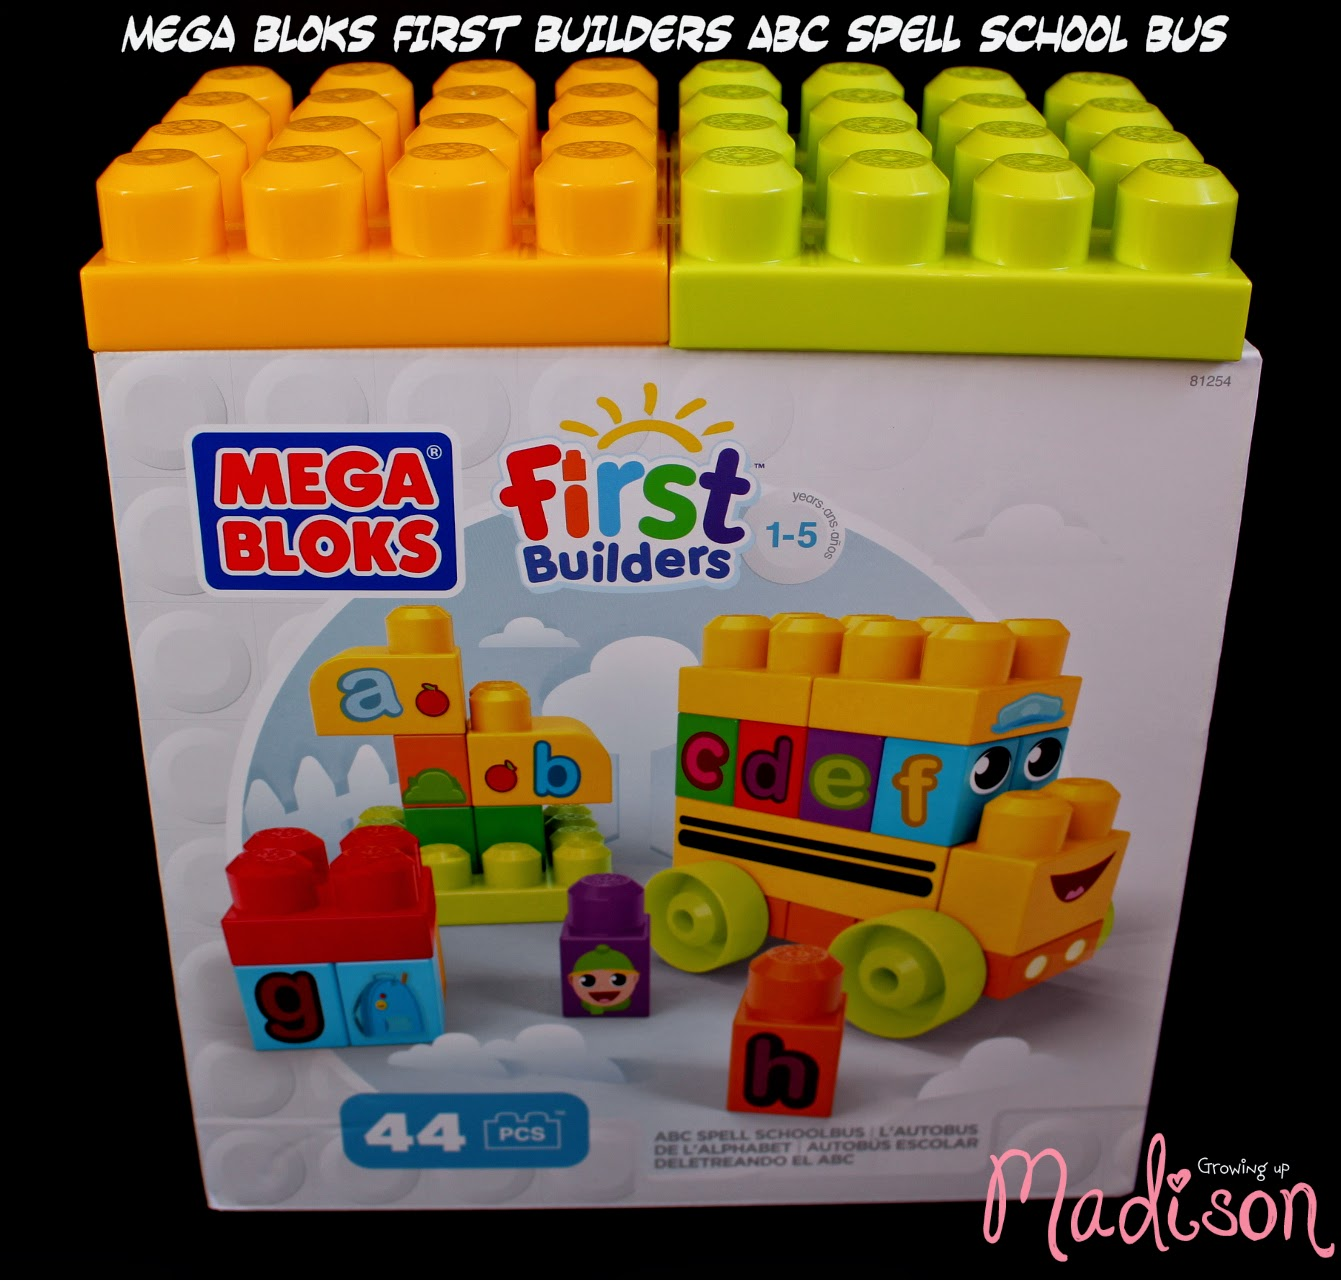 A b c spell school bus by mega bloks first builders for Blog builders